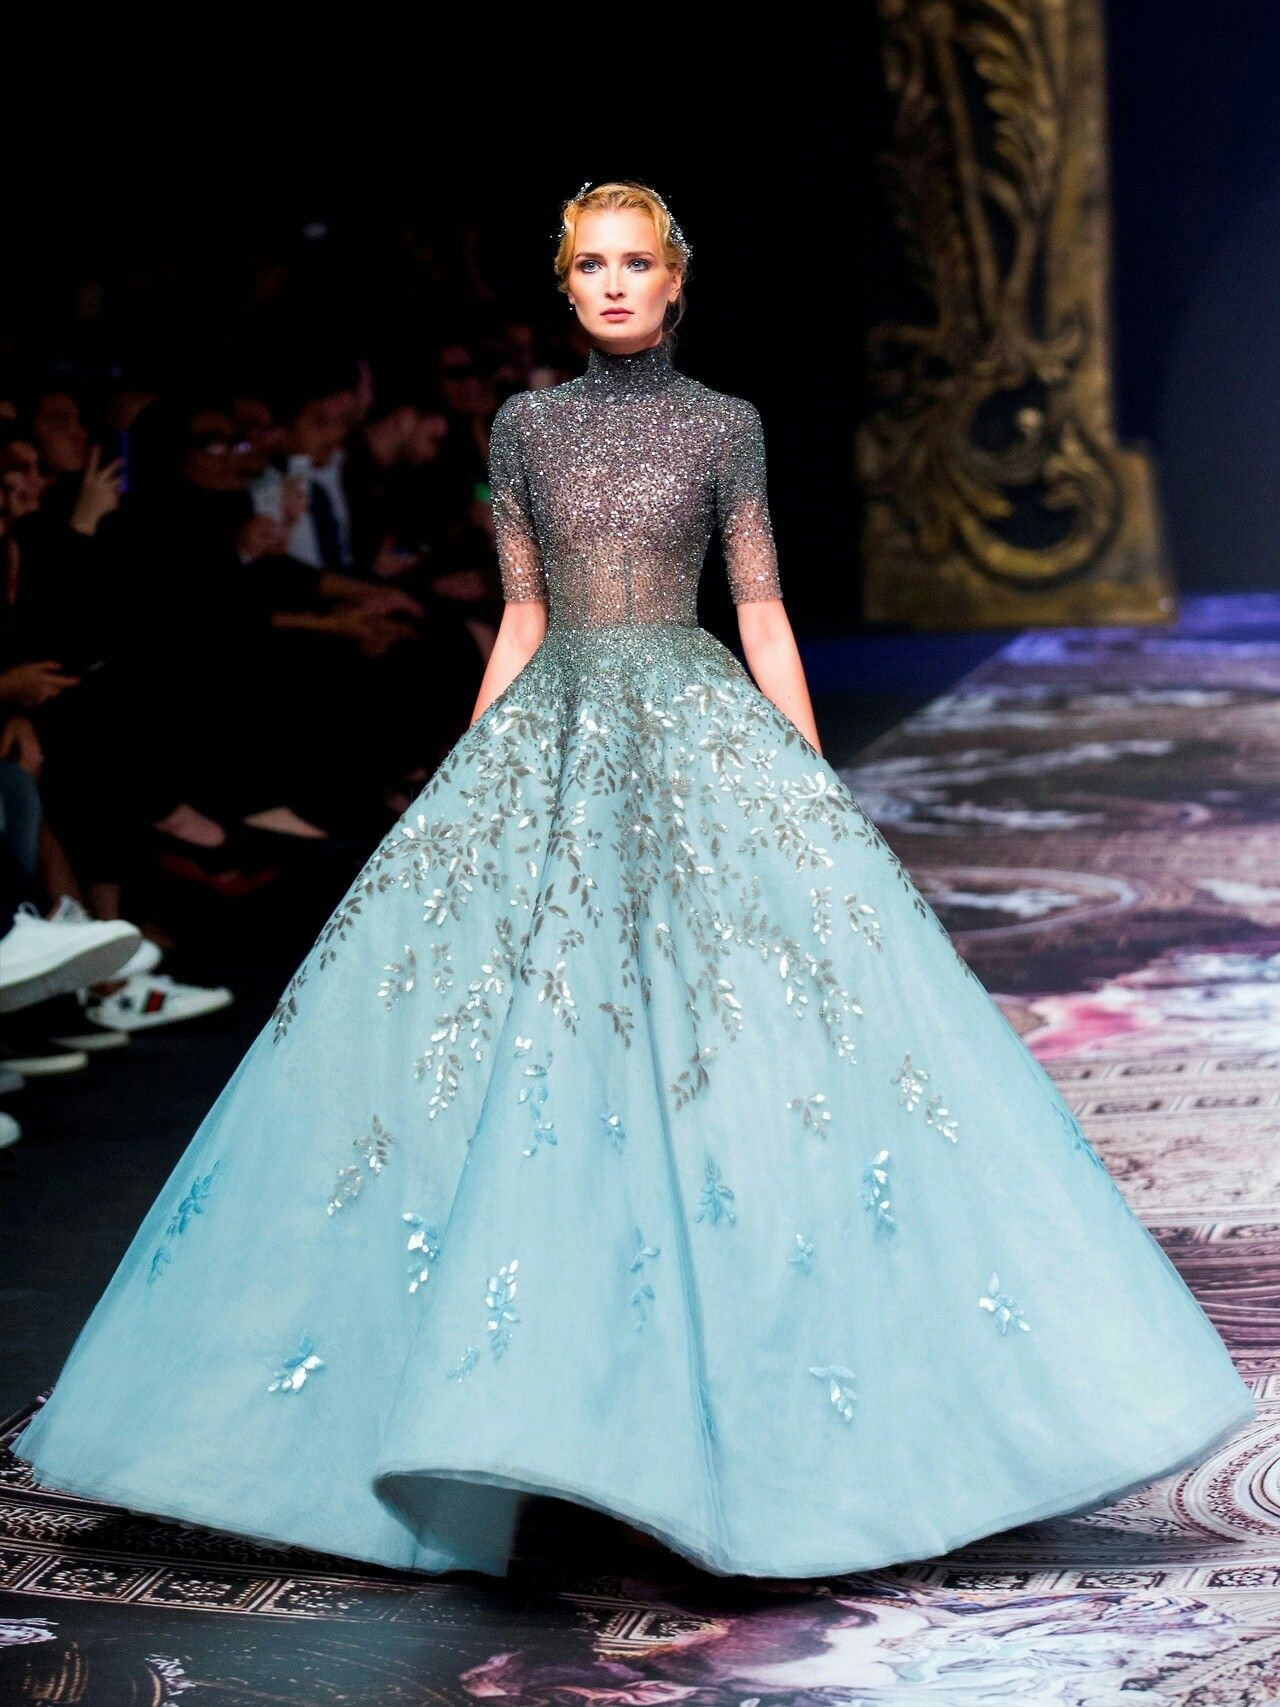 Pin by Cara on Stylish Style | Pinterest | Gowns, Michael cinco and ...